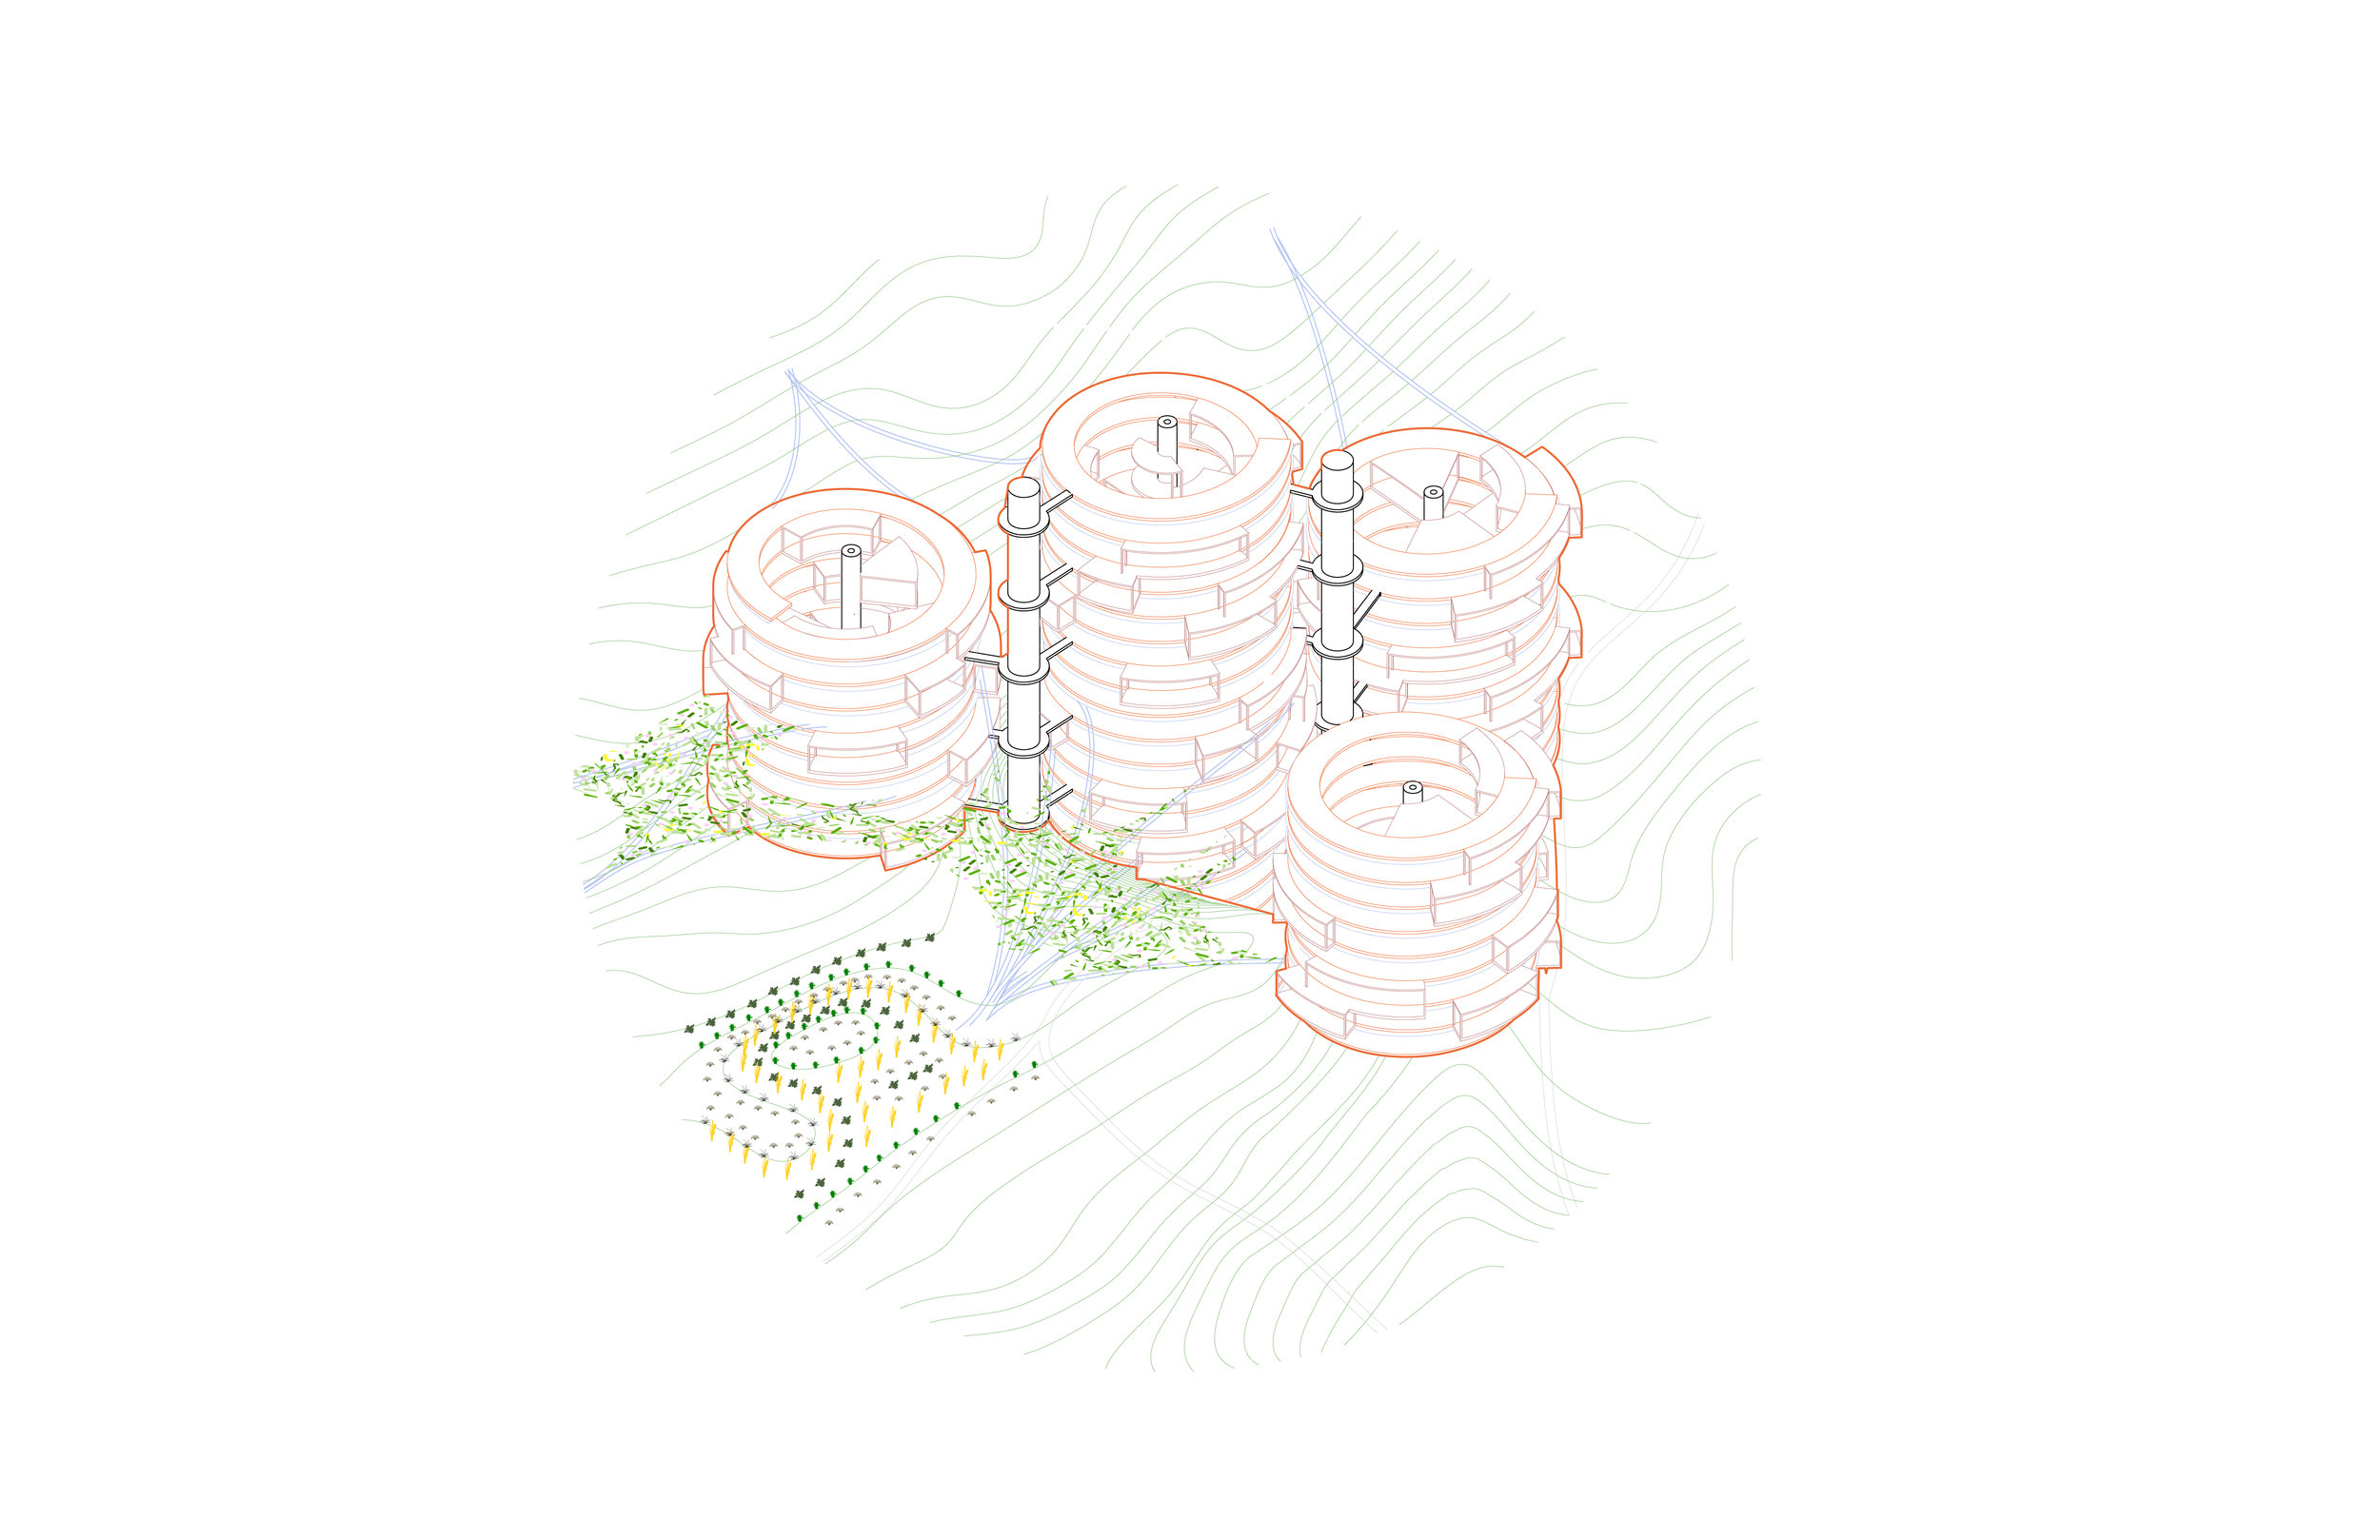 Network of coils connected by canopied farmscapes